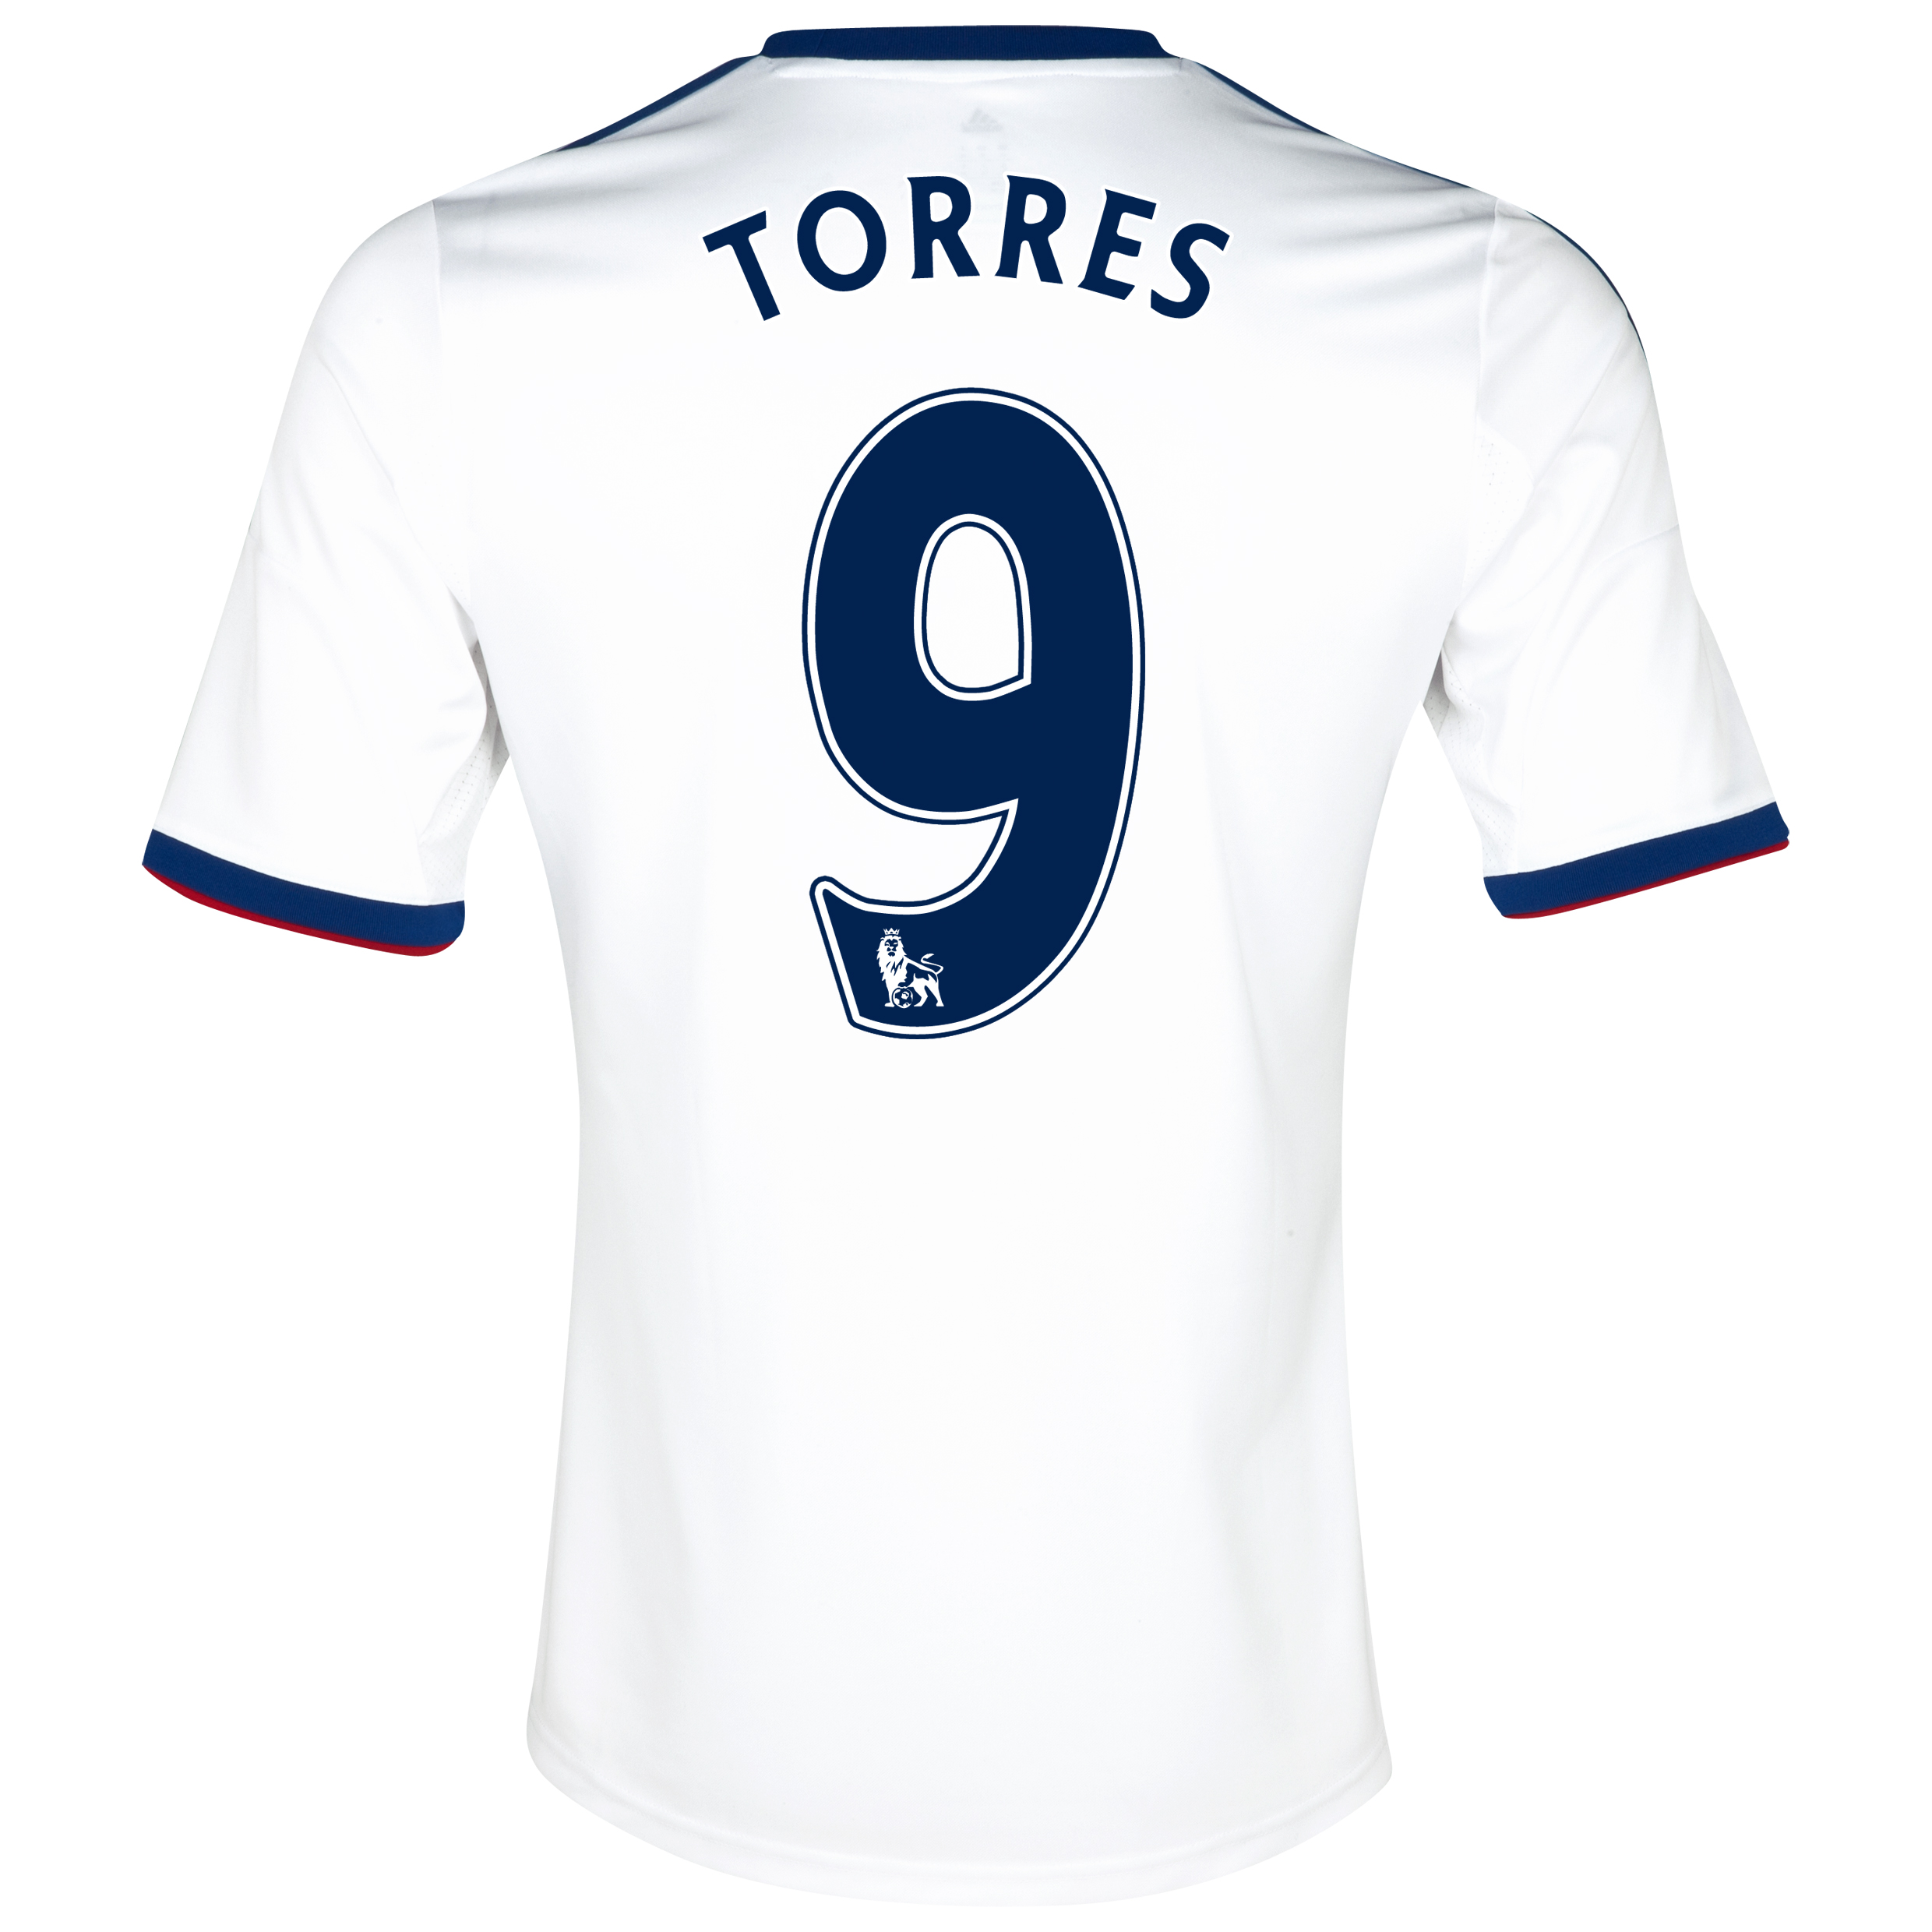 Chelsea Away Shirt 2013/14 with Torres 9 printing